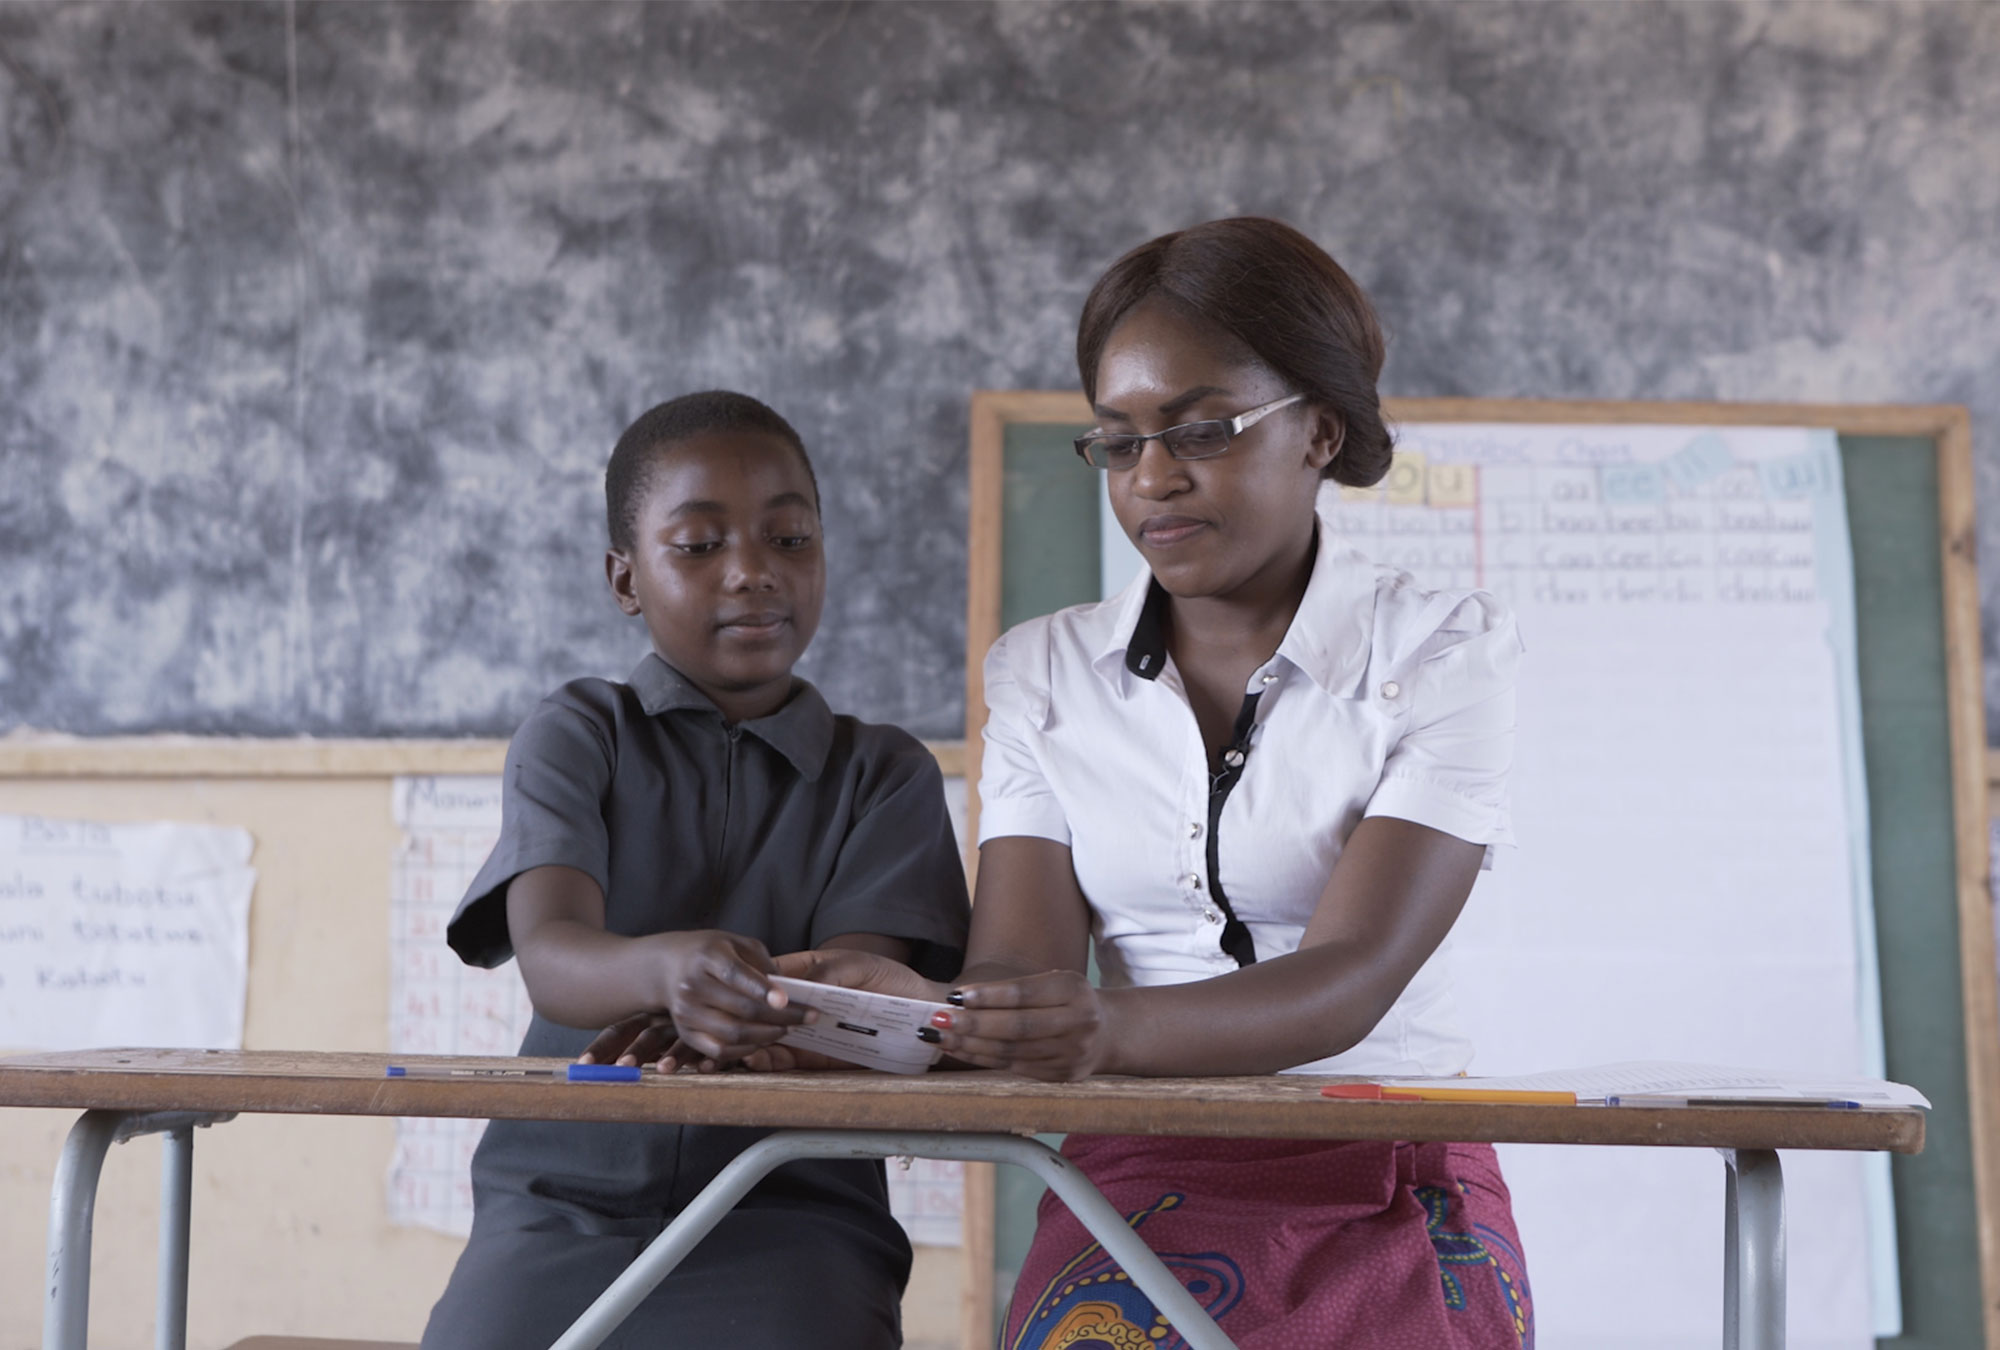 Teacher and child perform assessment